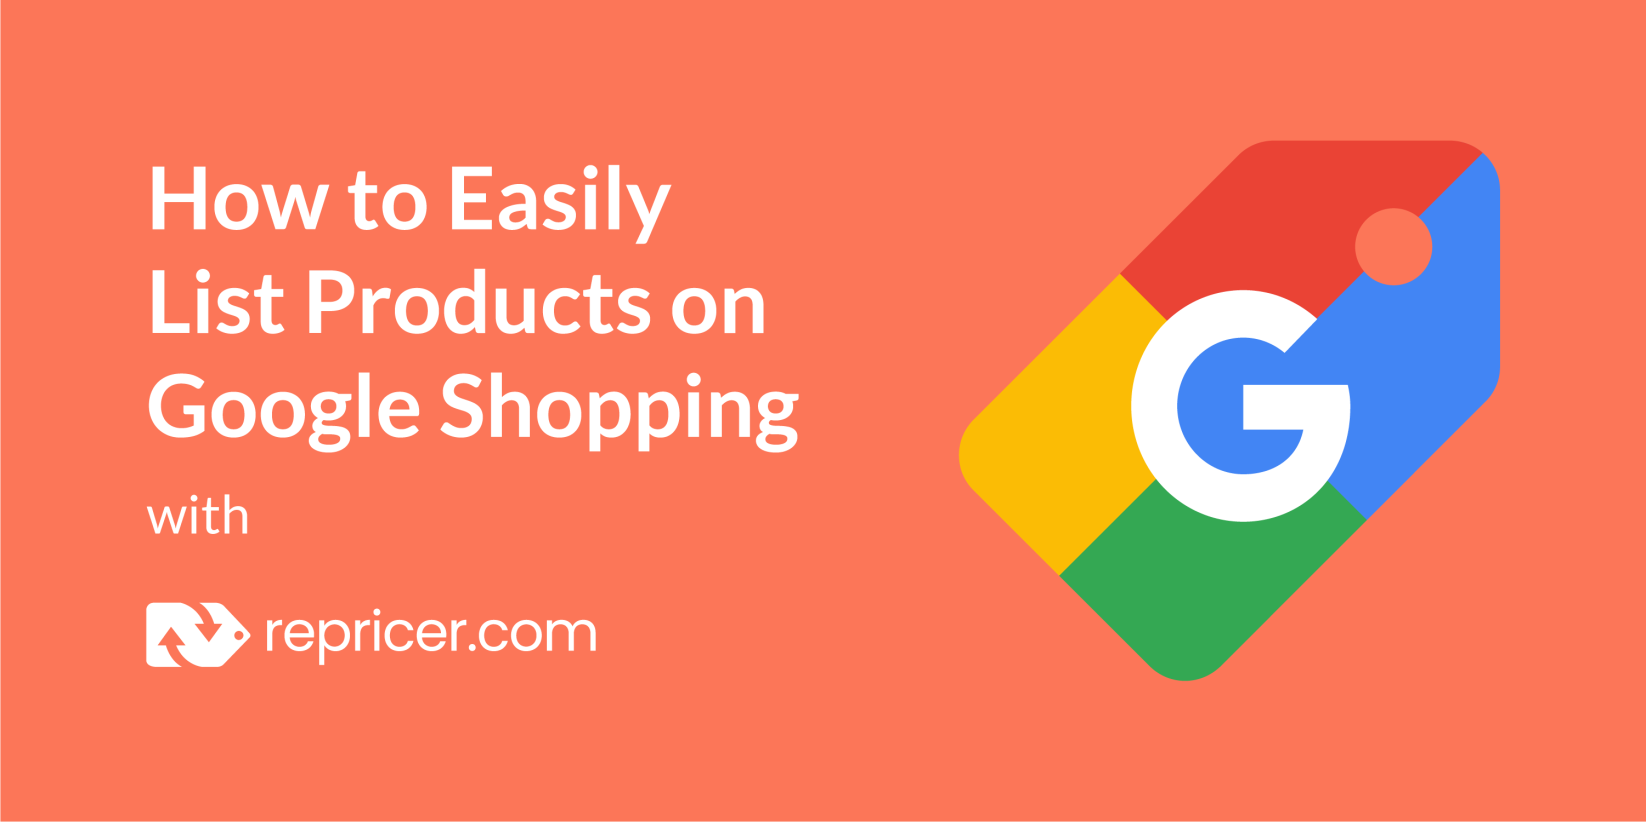 How to Easily List Products on Google Shopping With Repricer.com